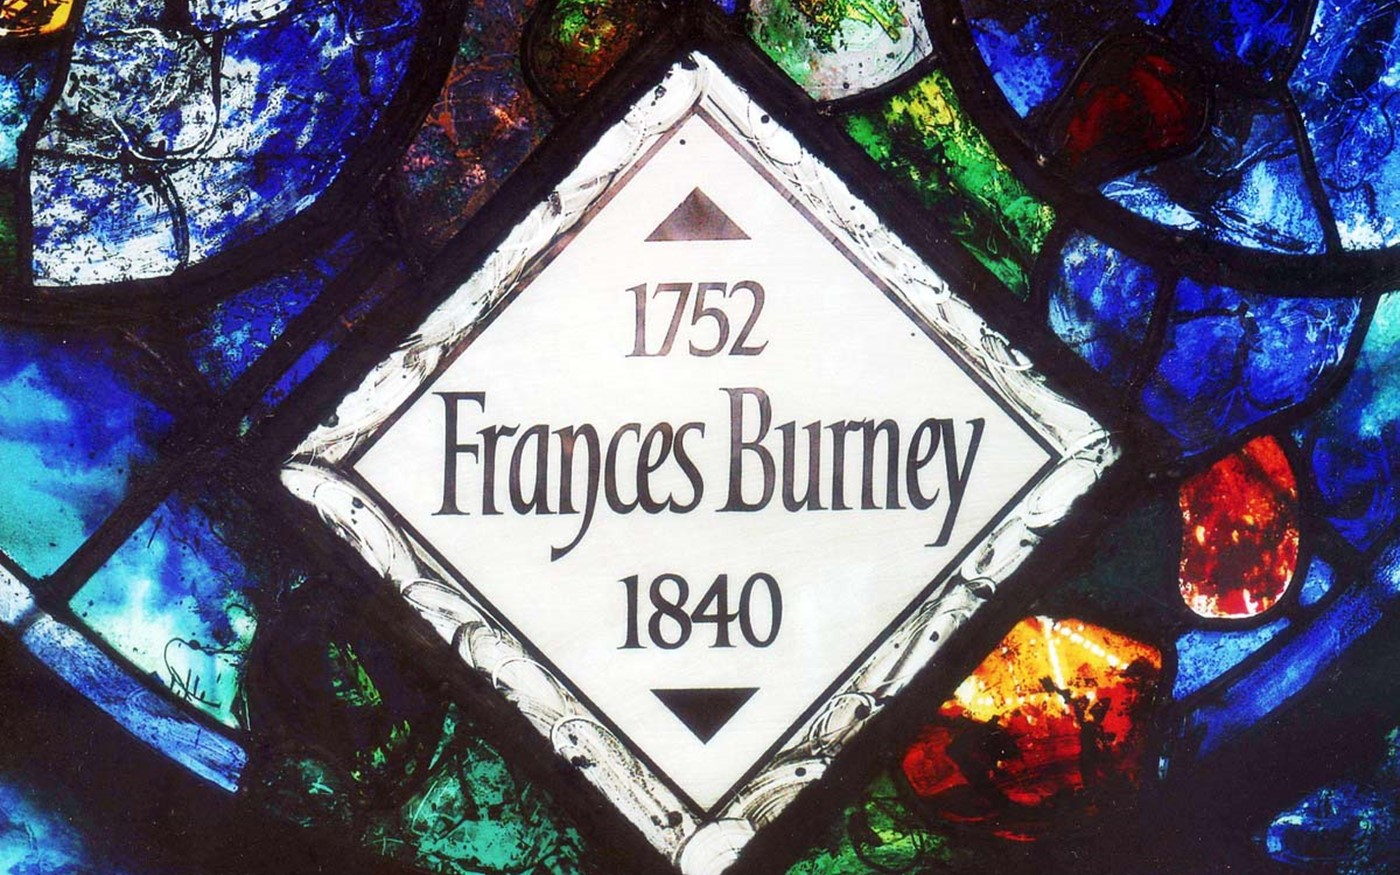 Frances and Charles Burney